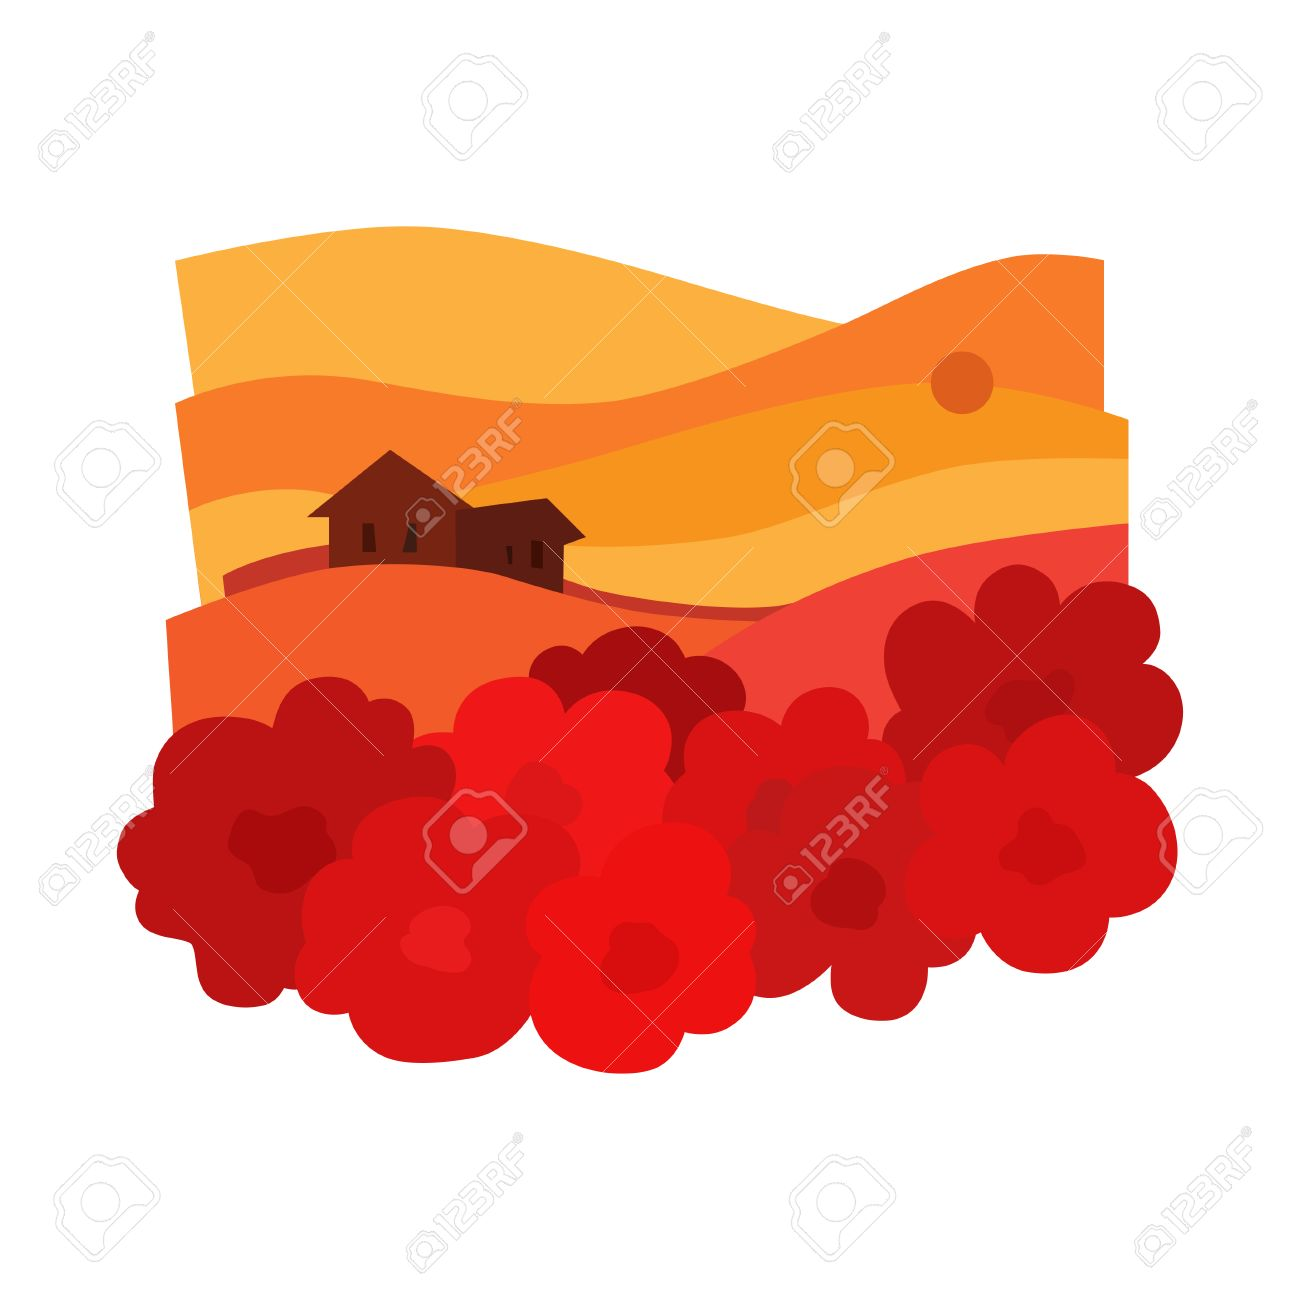 the landscape in the sunset with poppies and houses poppy field rh 123rf com Free Cartoon Sun Free Vector Textures